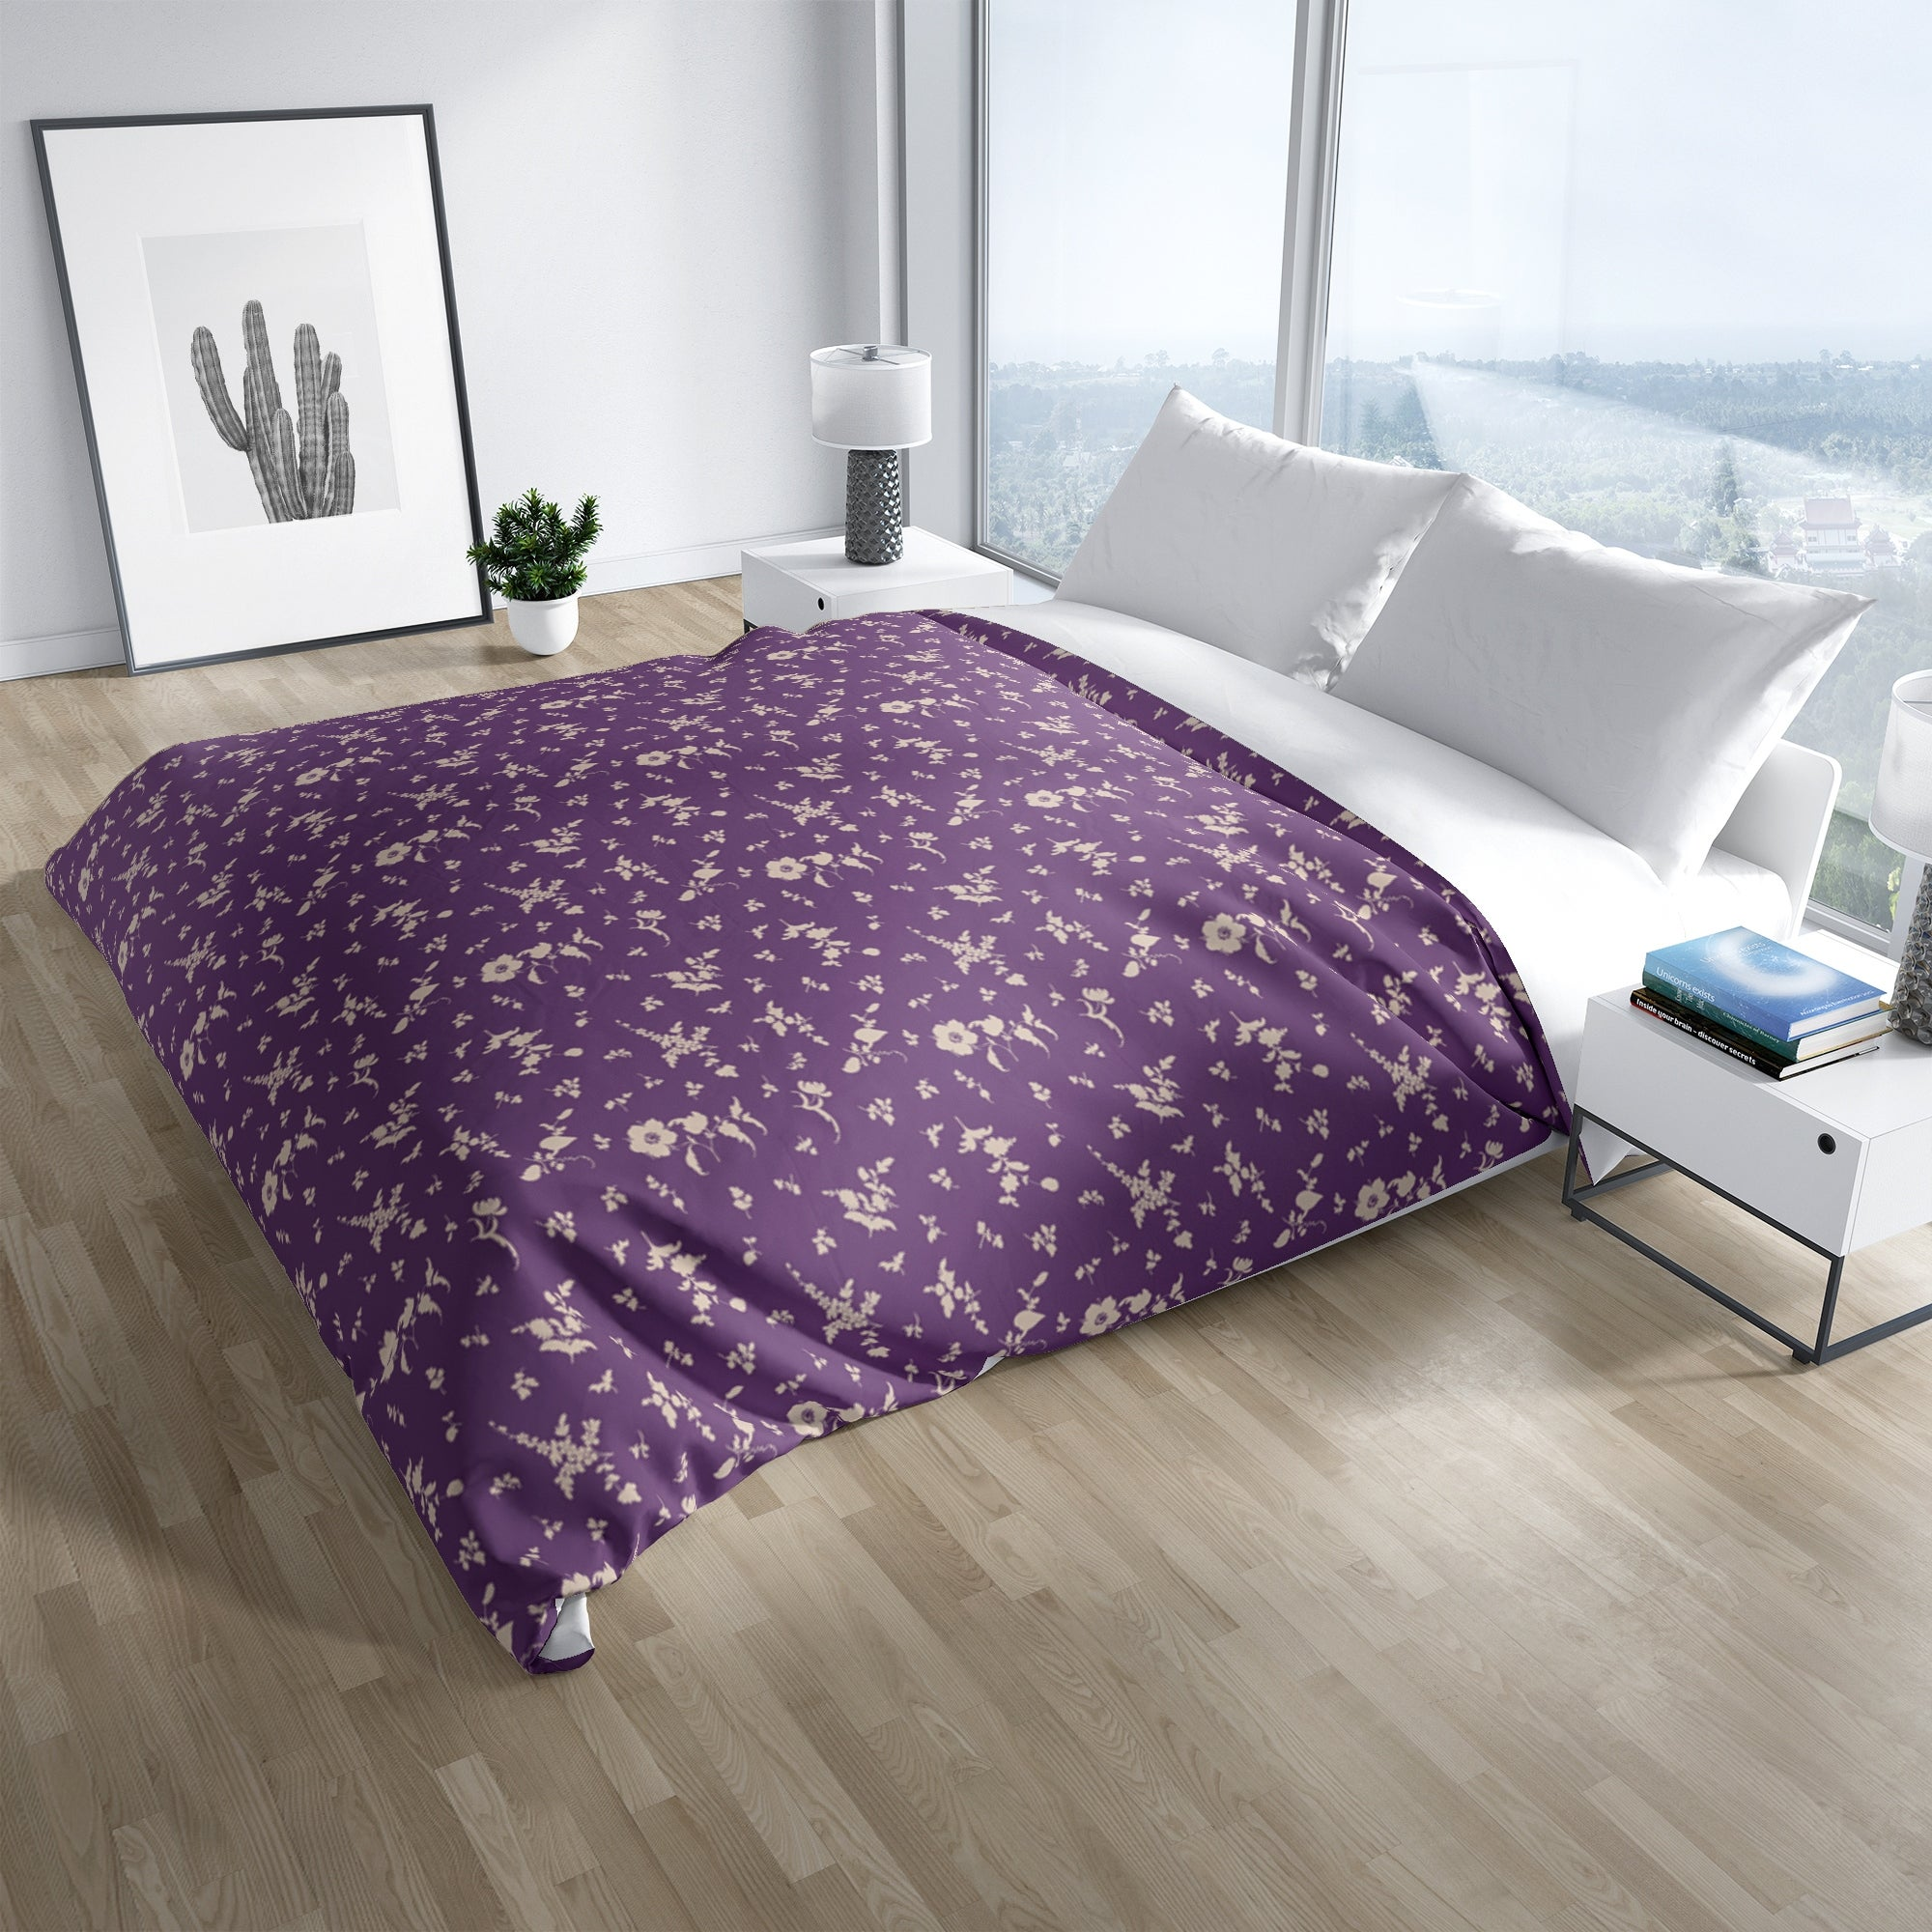 Floral Dance Purple Duvet Cover By Kavka Designs On Sale Overstock 30772783